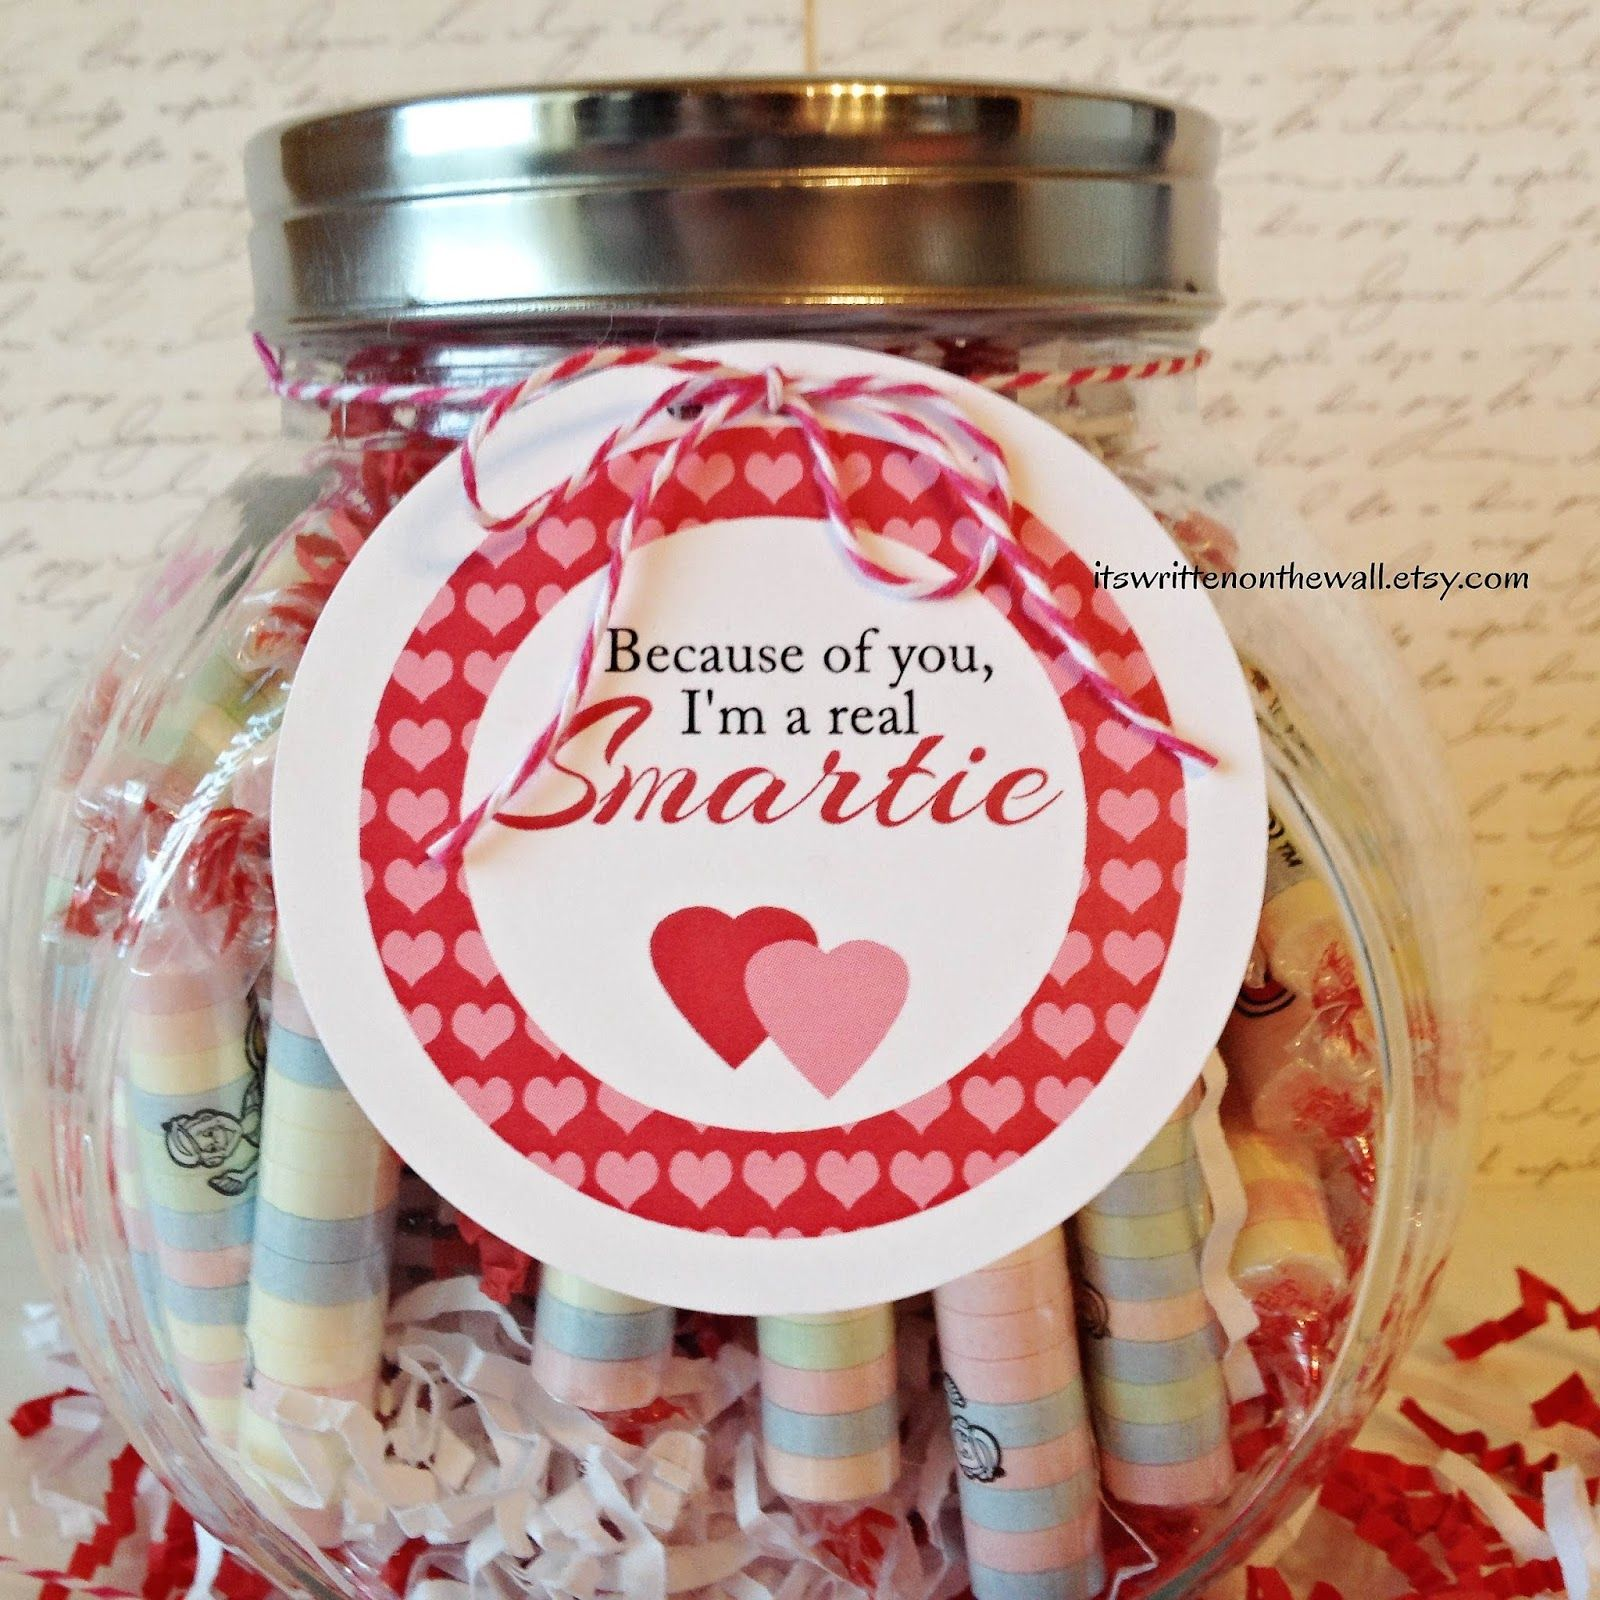 daycare teacher gifts for valentine's day